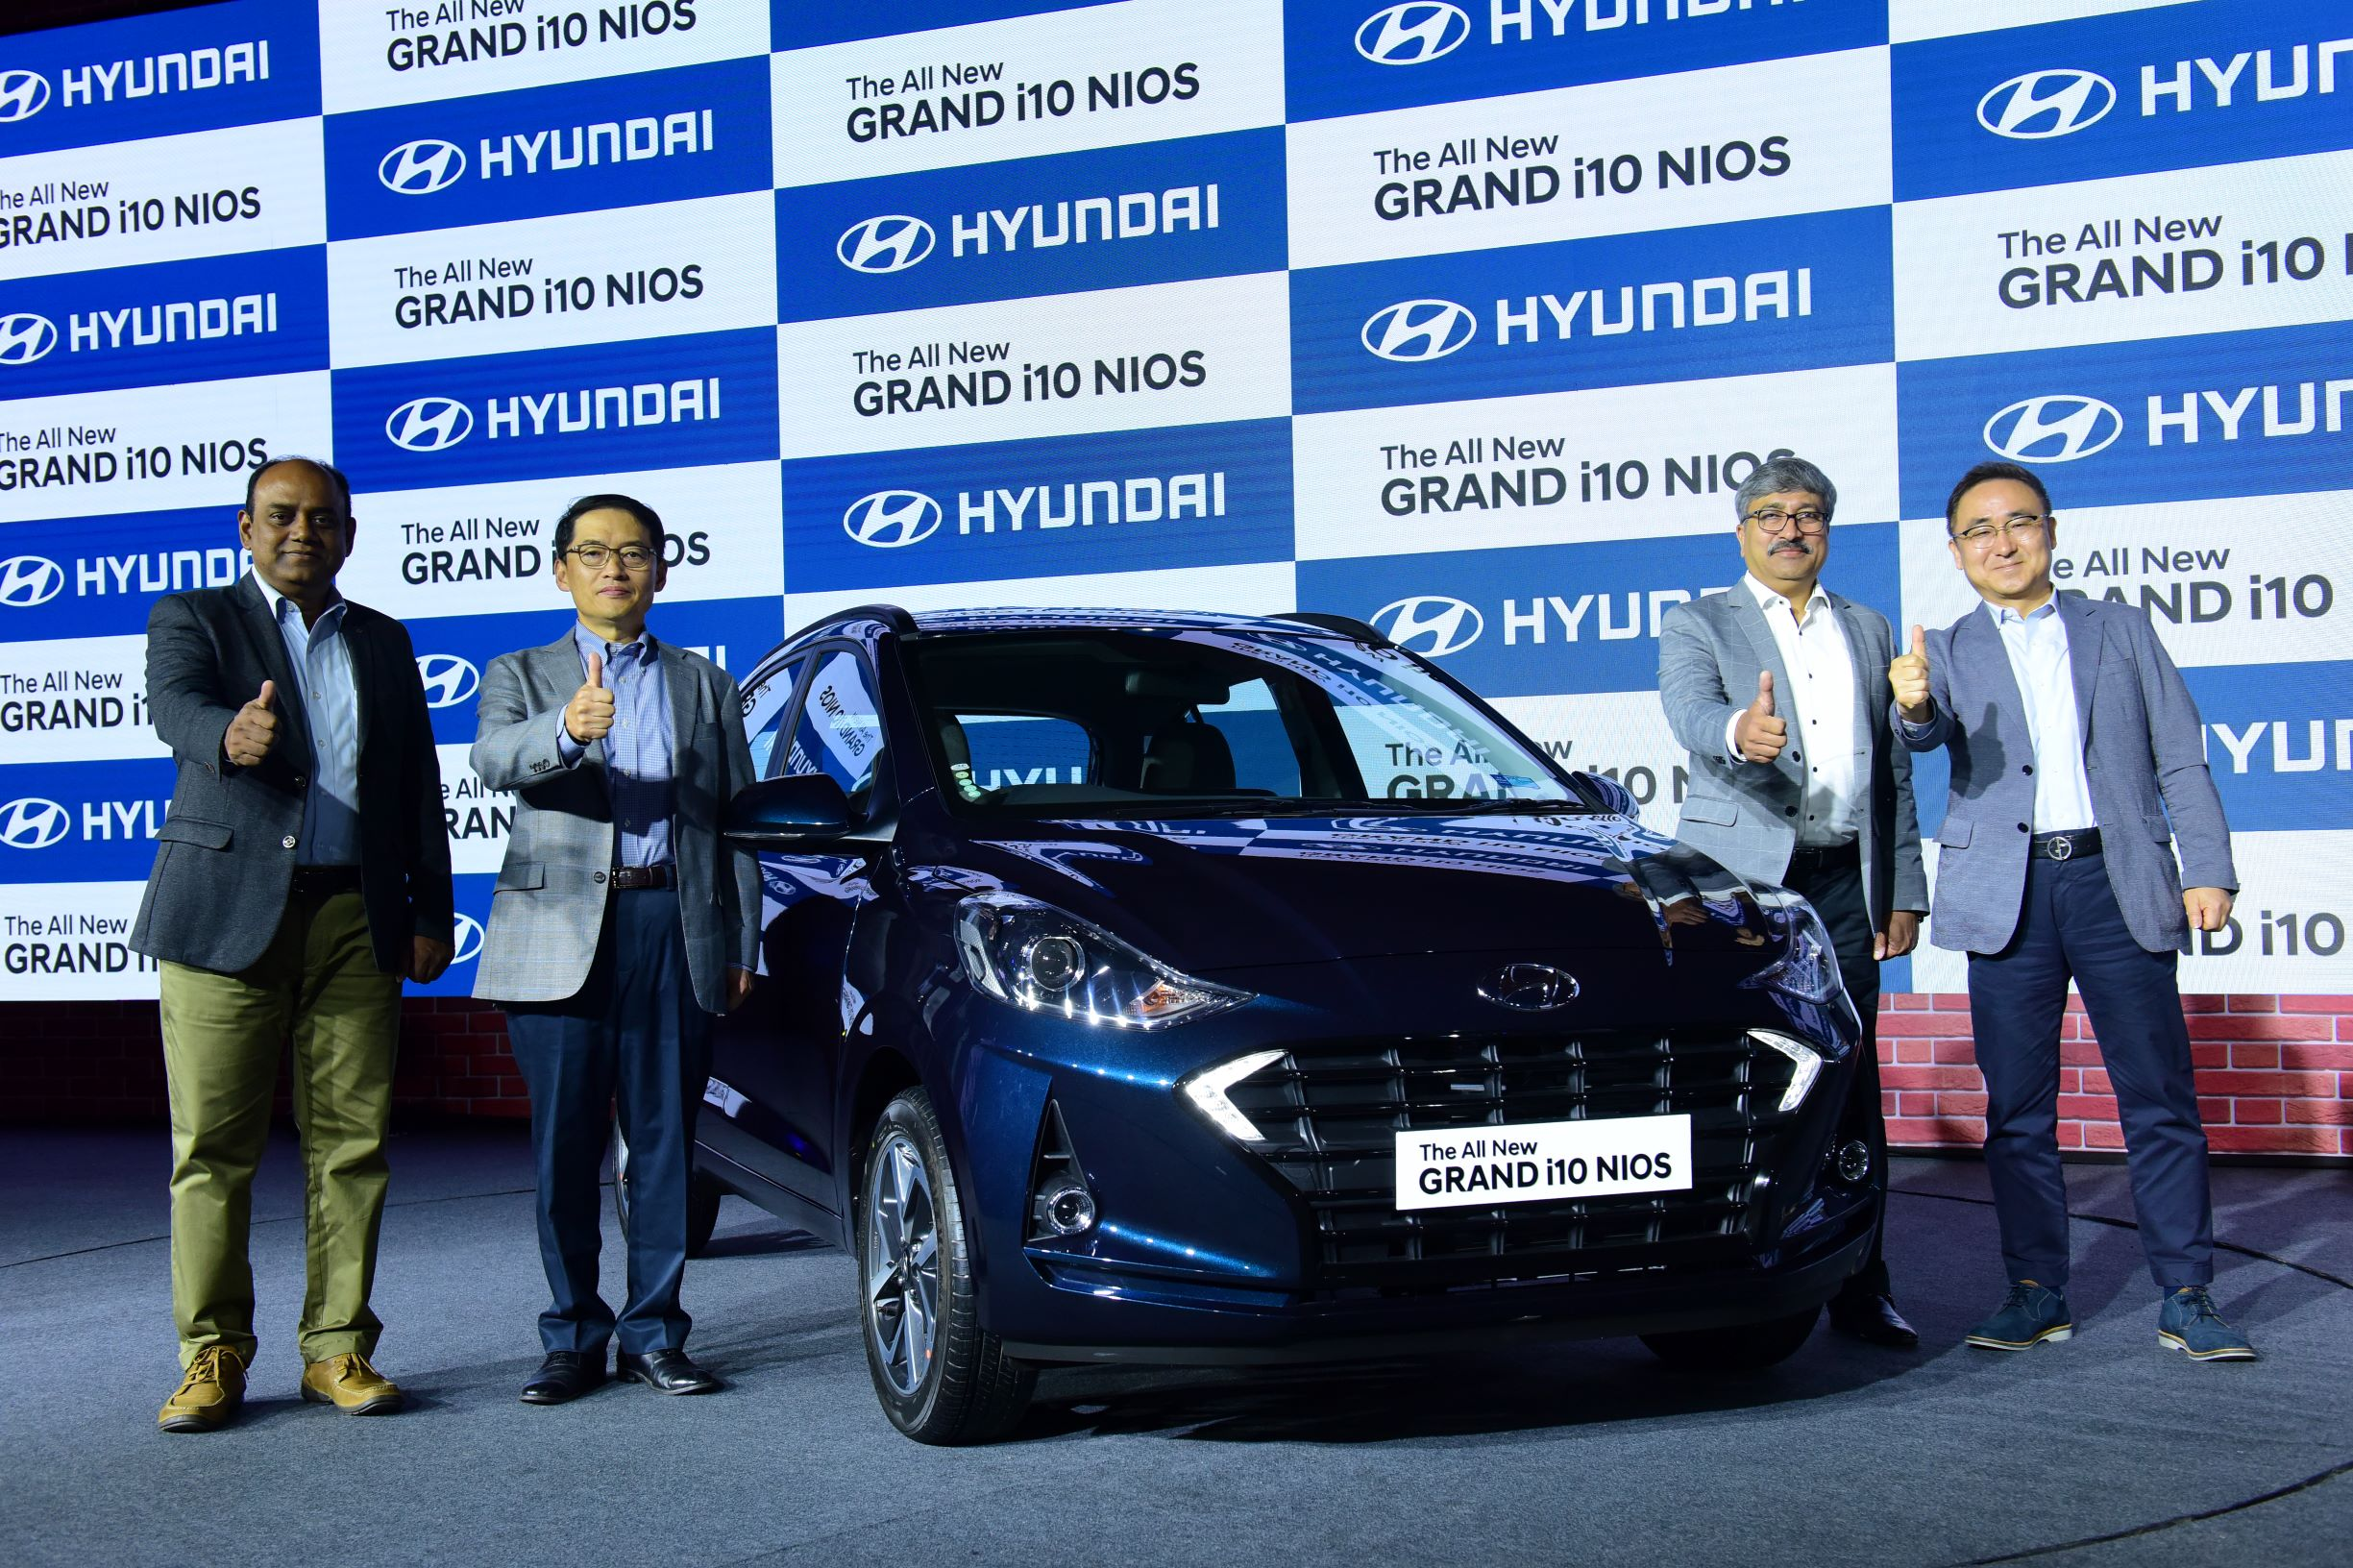 (L to R) Mr. S.S. Kim, MD & CEO, HMIL and Mr. S Punnaivanam, Vice President – National Service, HMIL along with Mr. S J Ha, ED- Sales & Marketing, HMIL and Mr. Vikas Jain, National Sales Head, HMIL at the Launch of Hyundai The GRAND i10 NIOS in New Delhi.- Photo By GPN